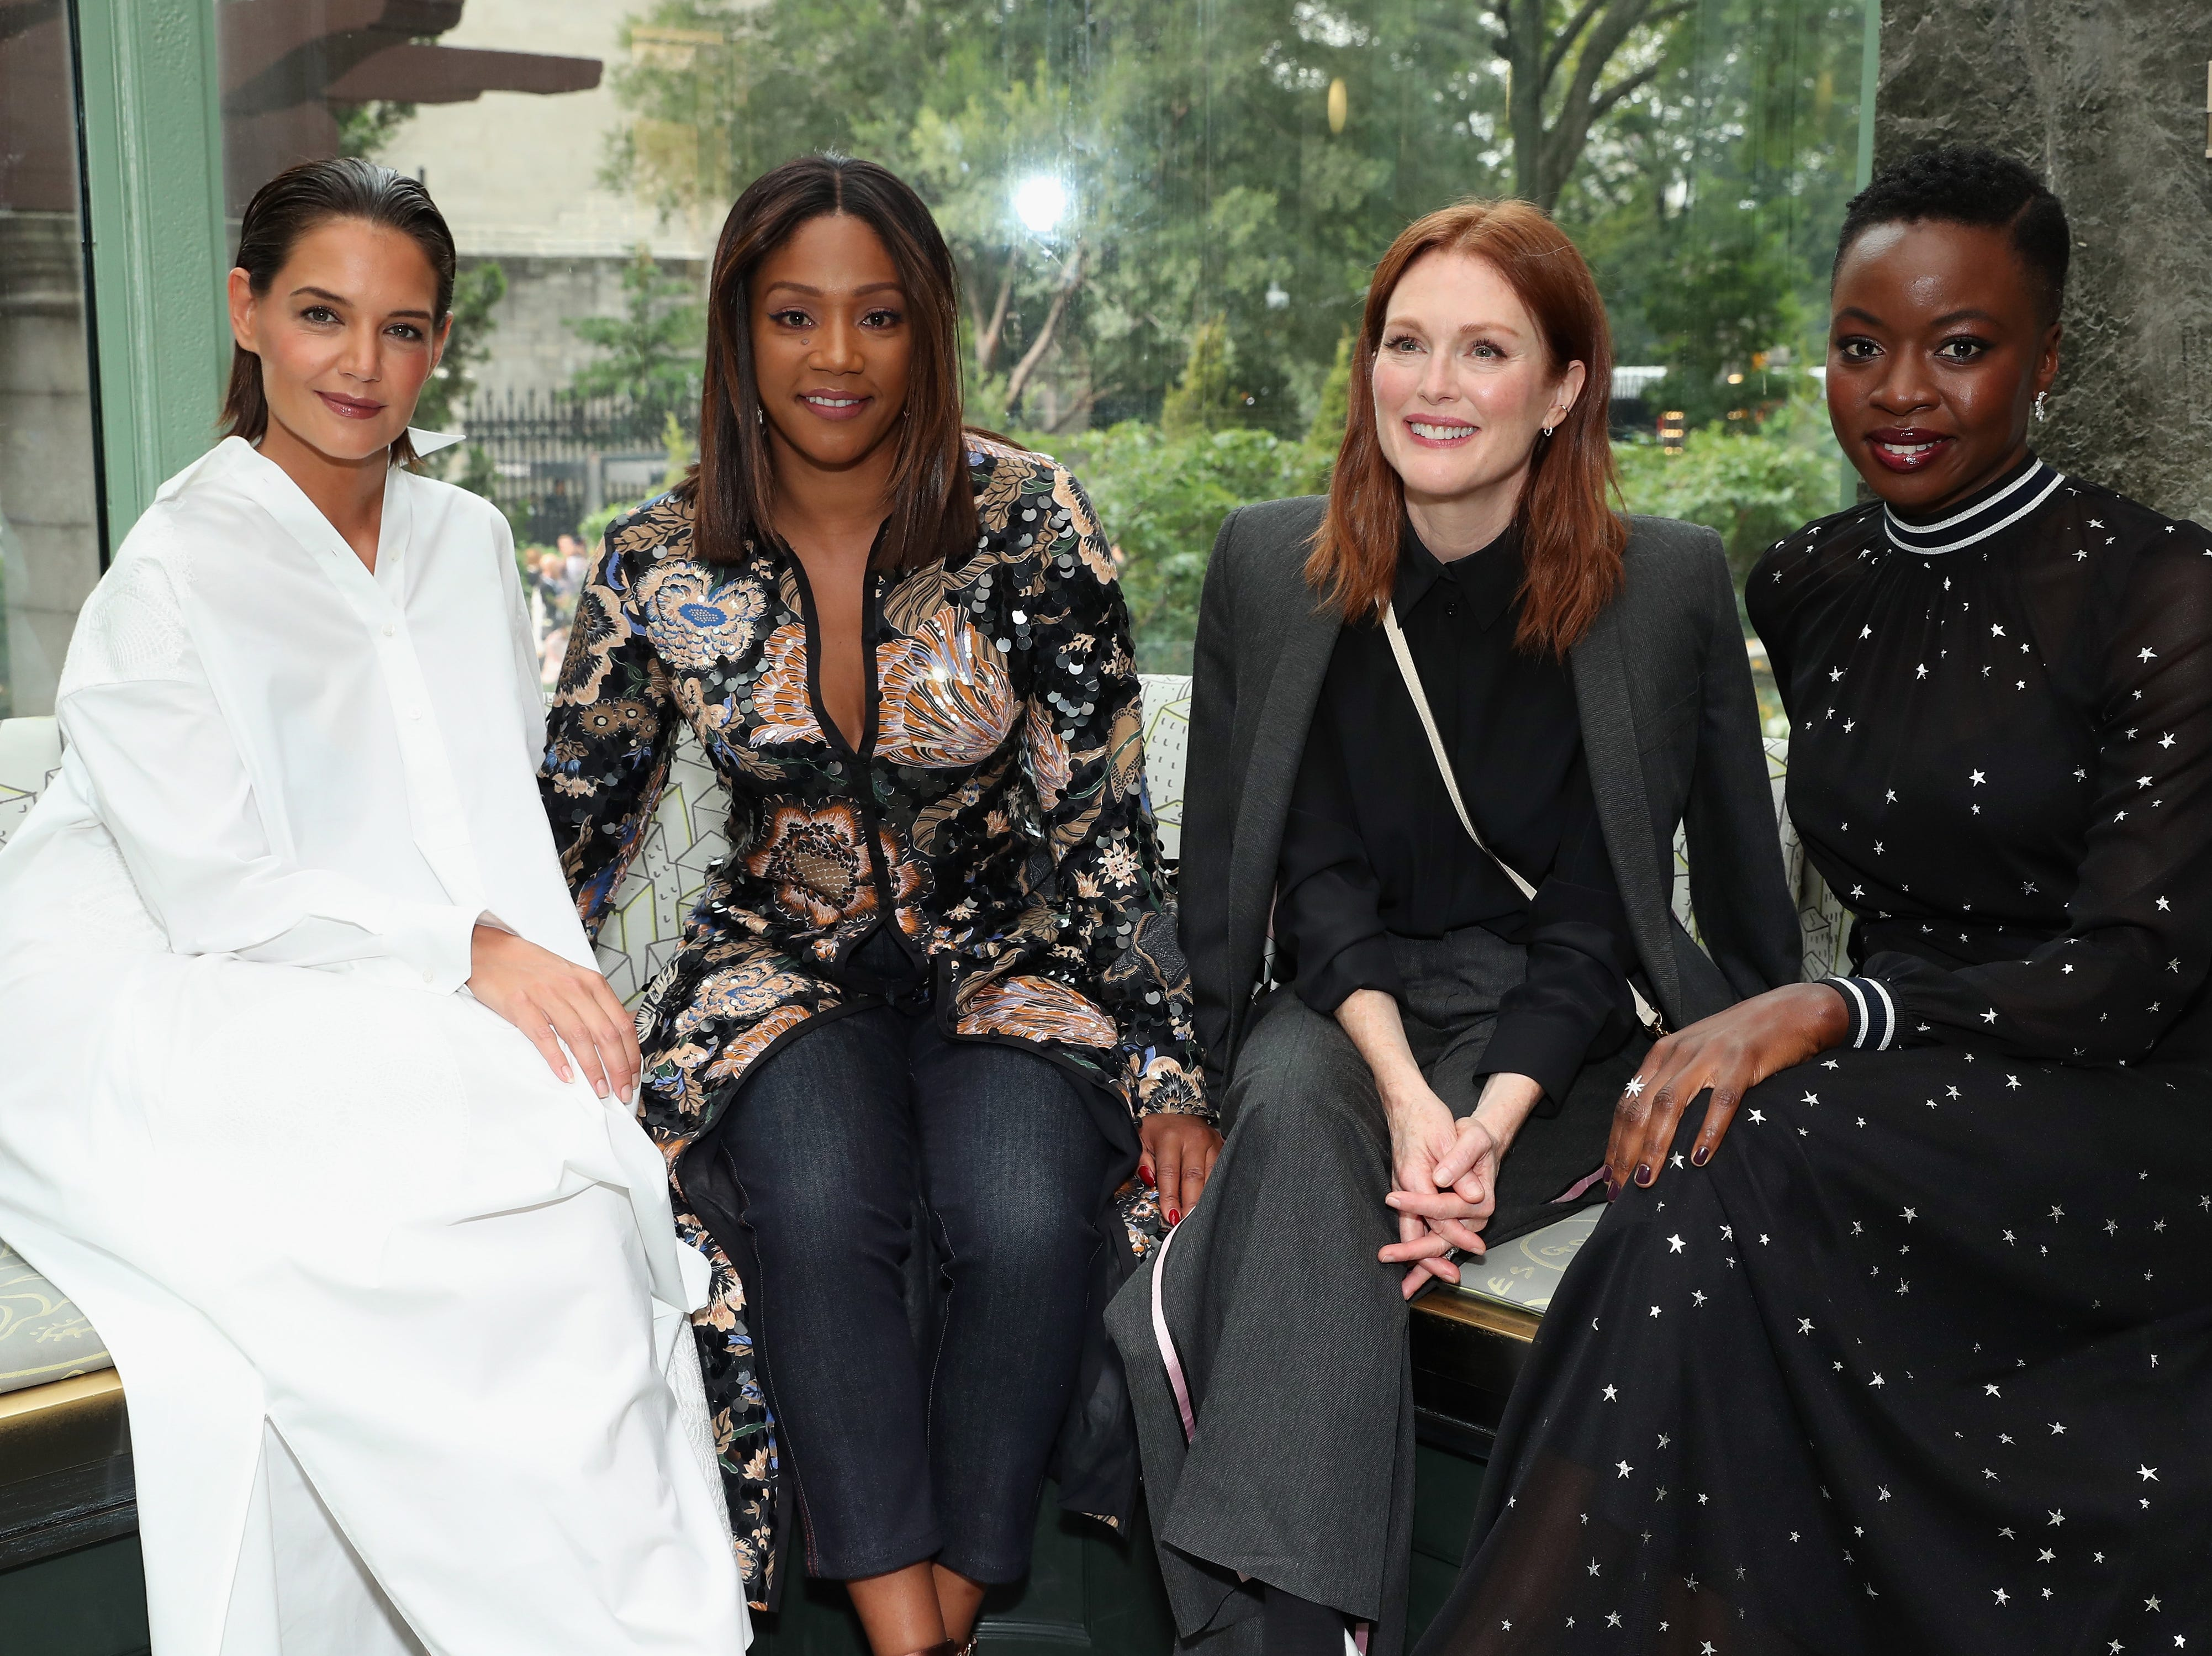 NEW YORK, NY - SEPTEMBER 07:  (L-R) Actors Katie Holmes, Tiffany Haddish, Julianne Moore and Danai Gurira pose backstage during the Tory Burch Spring Summer 2019 Fashion Show at Cooper Hewitt, Smithsonian Design Museum on September 7, 2018 in New York City.  (Photo by Cindy Ord/Getty Images for Tory Burch) ORG XMIT: 775216253 ORIG FILE ID: 1028544220